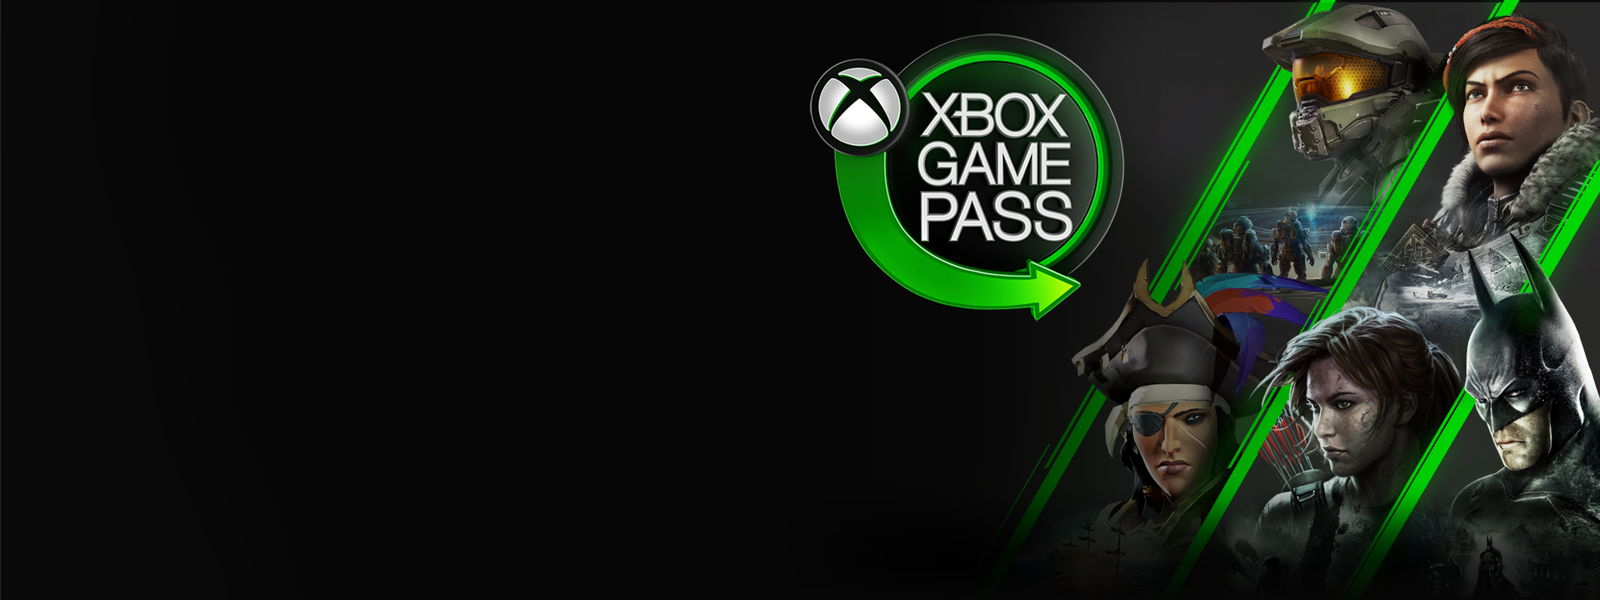 Xbox Game Pass sign and video game characters.